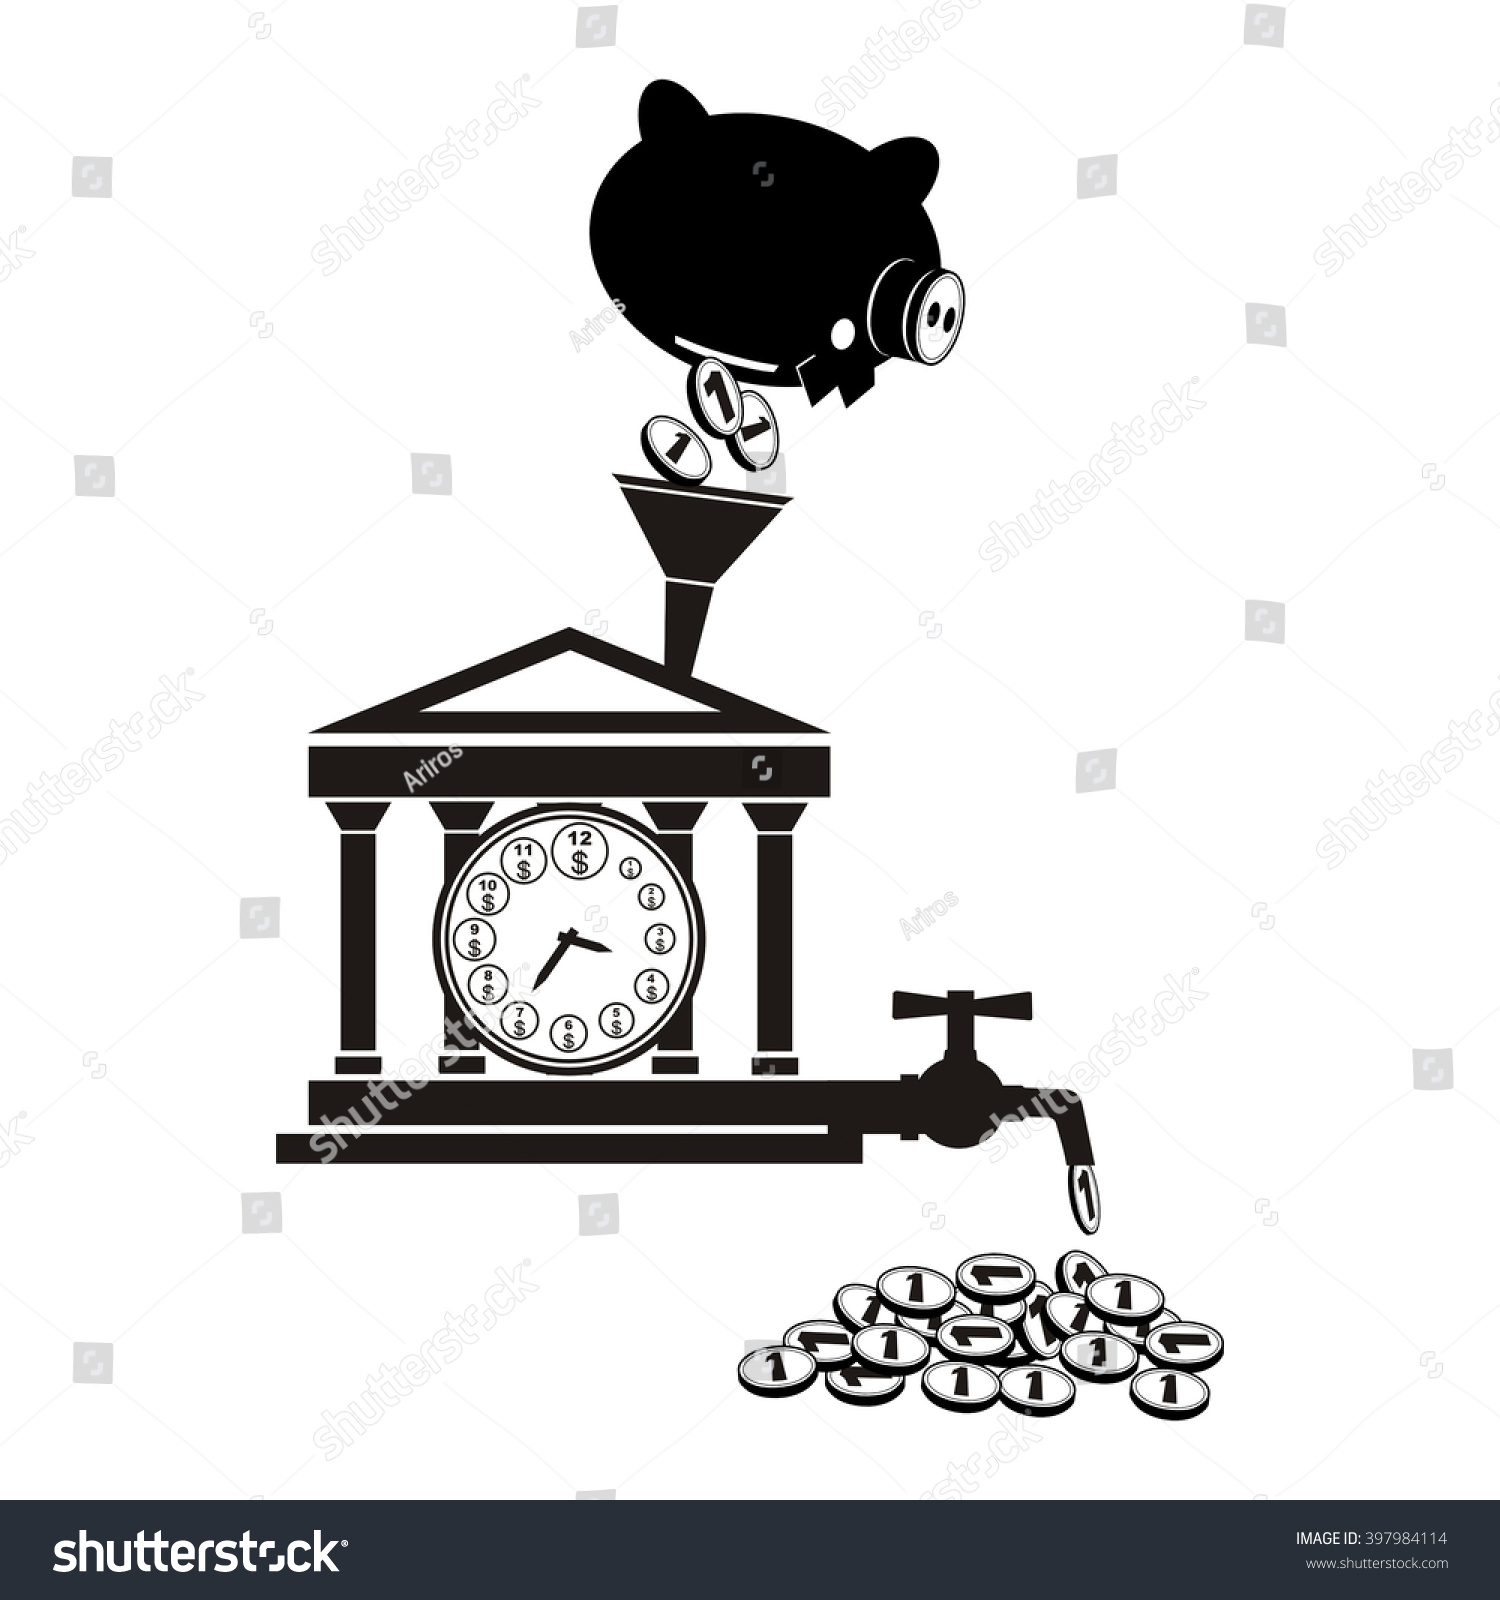 Banking symbol bank symbol pension fund stock vector 397984114 banking symbol bank symbol pension fund symbol mutual fund symbol computer drawing biocorpaavc Images